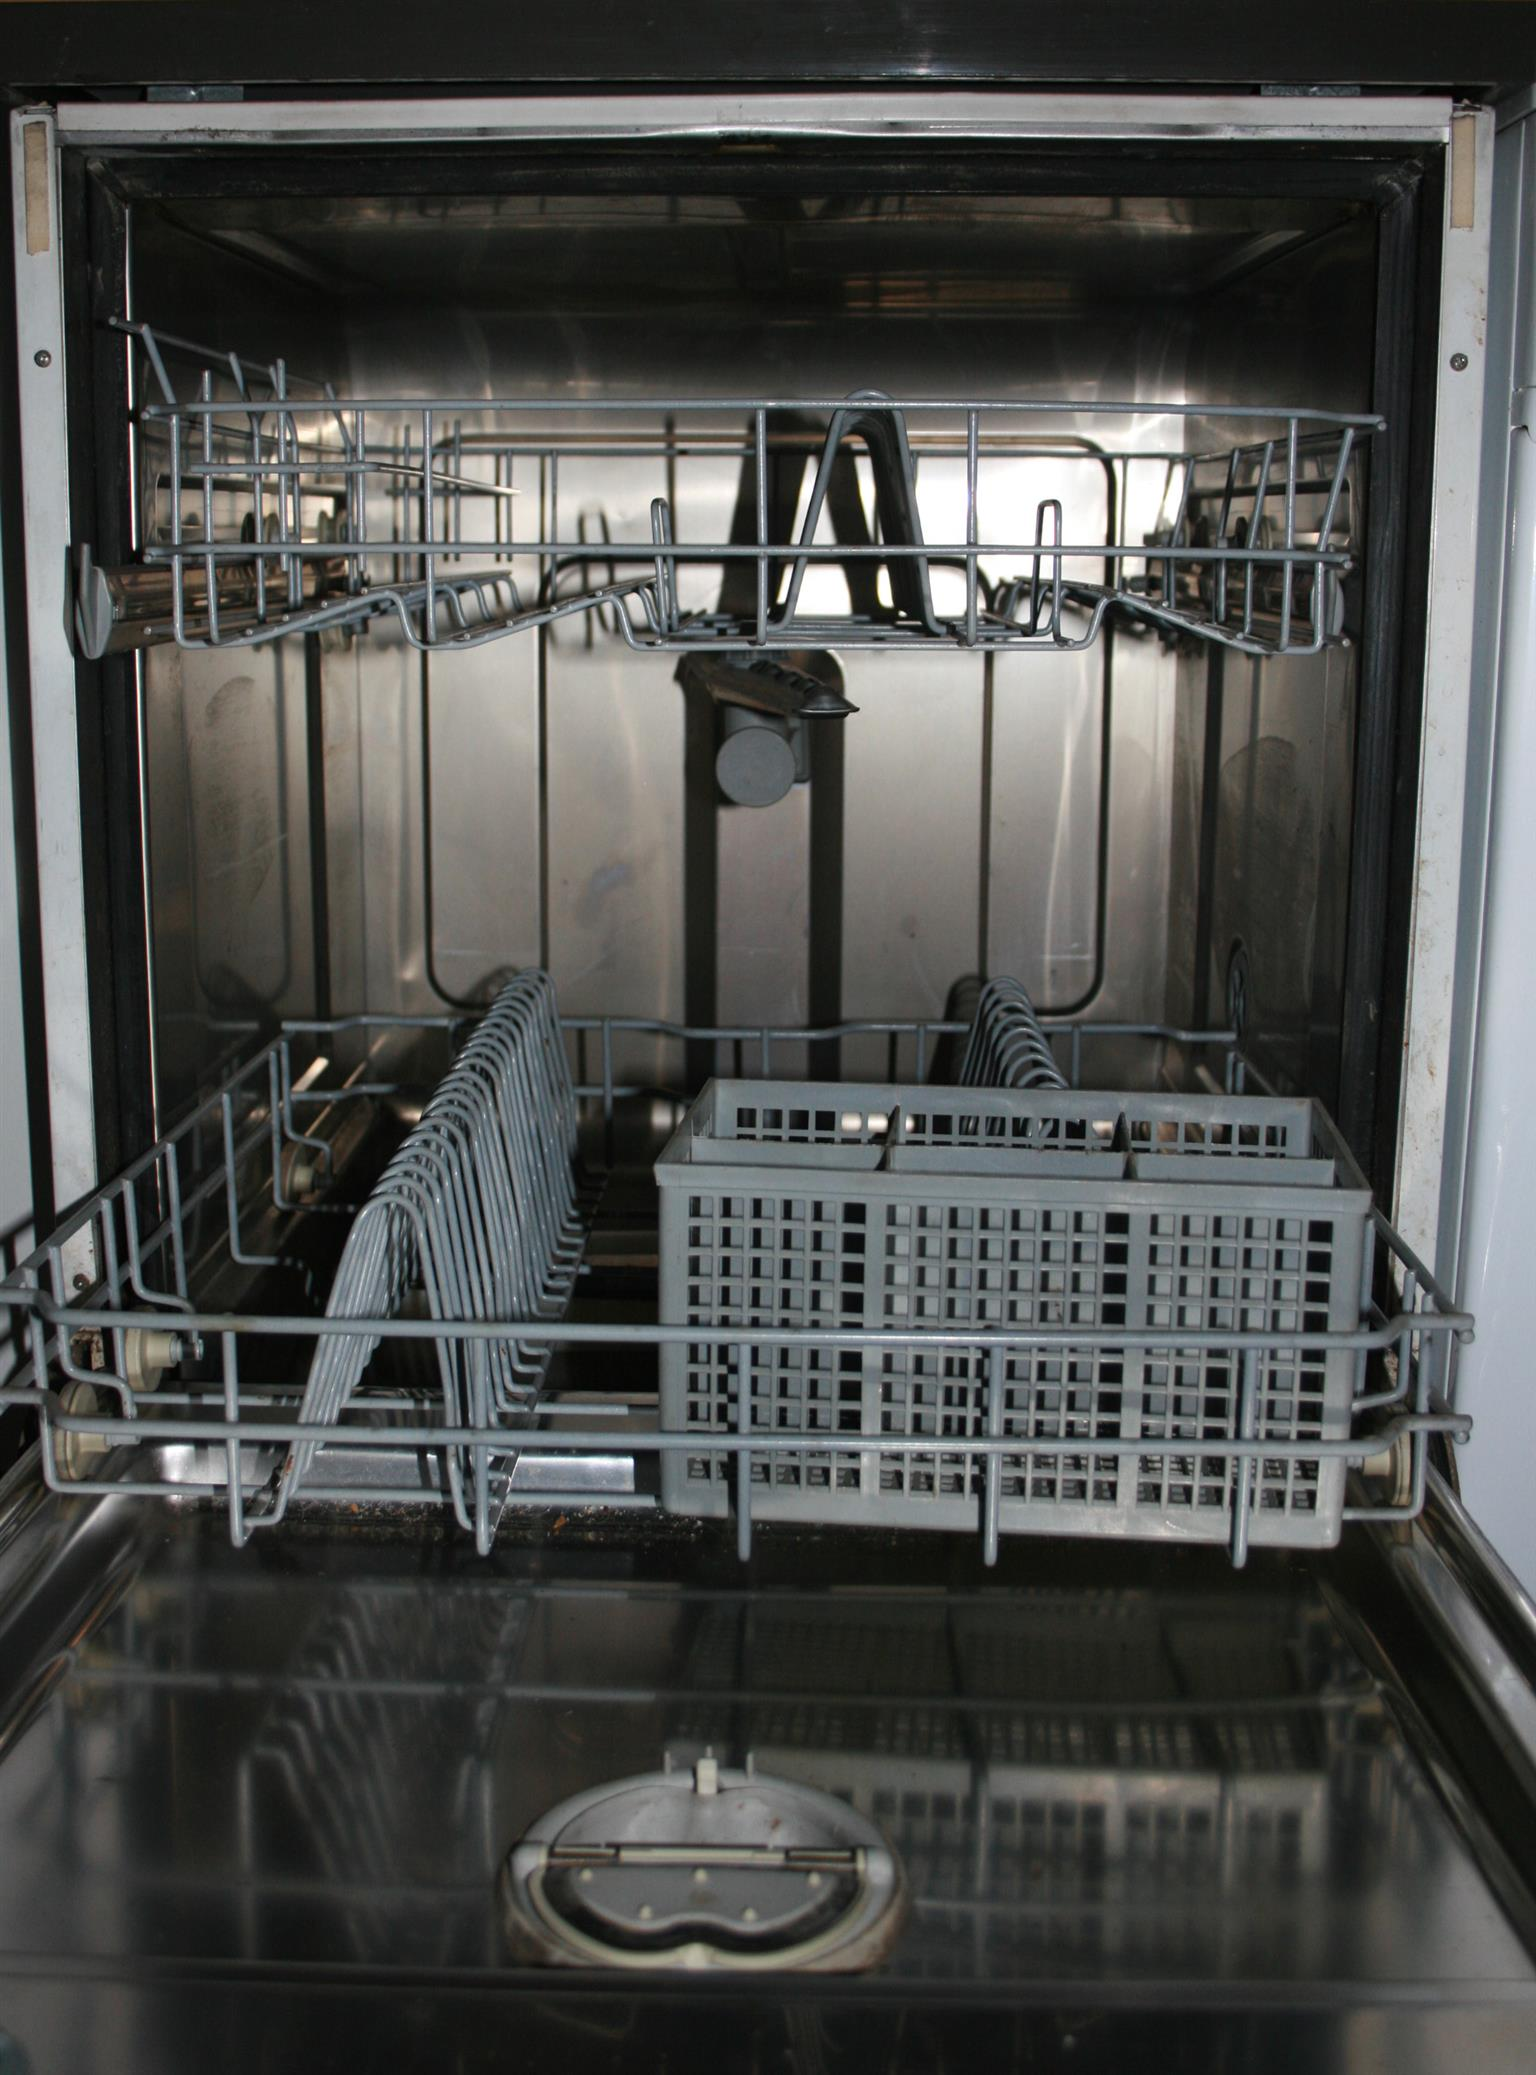 Univa Dishwasher